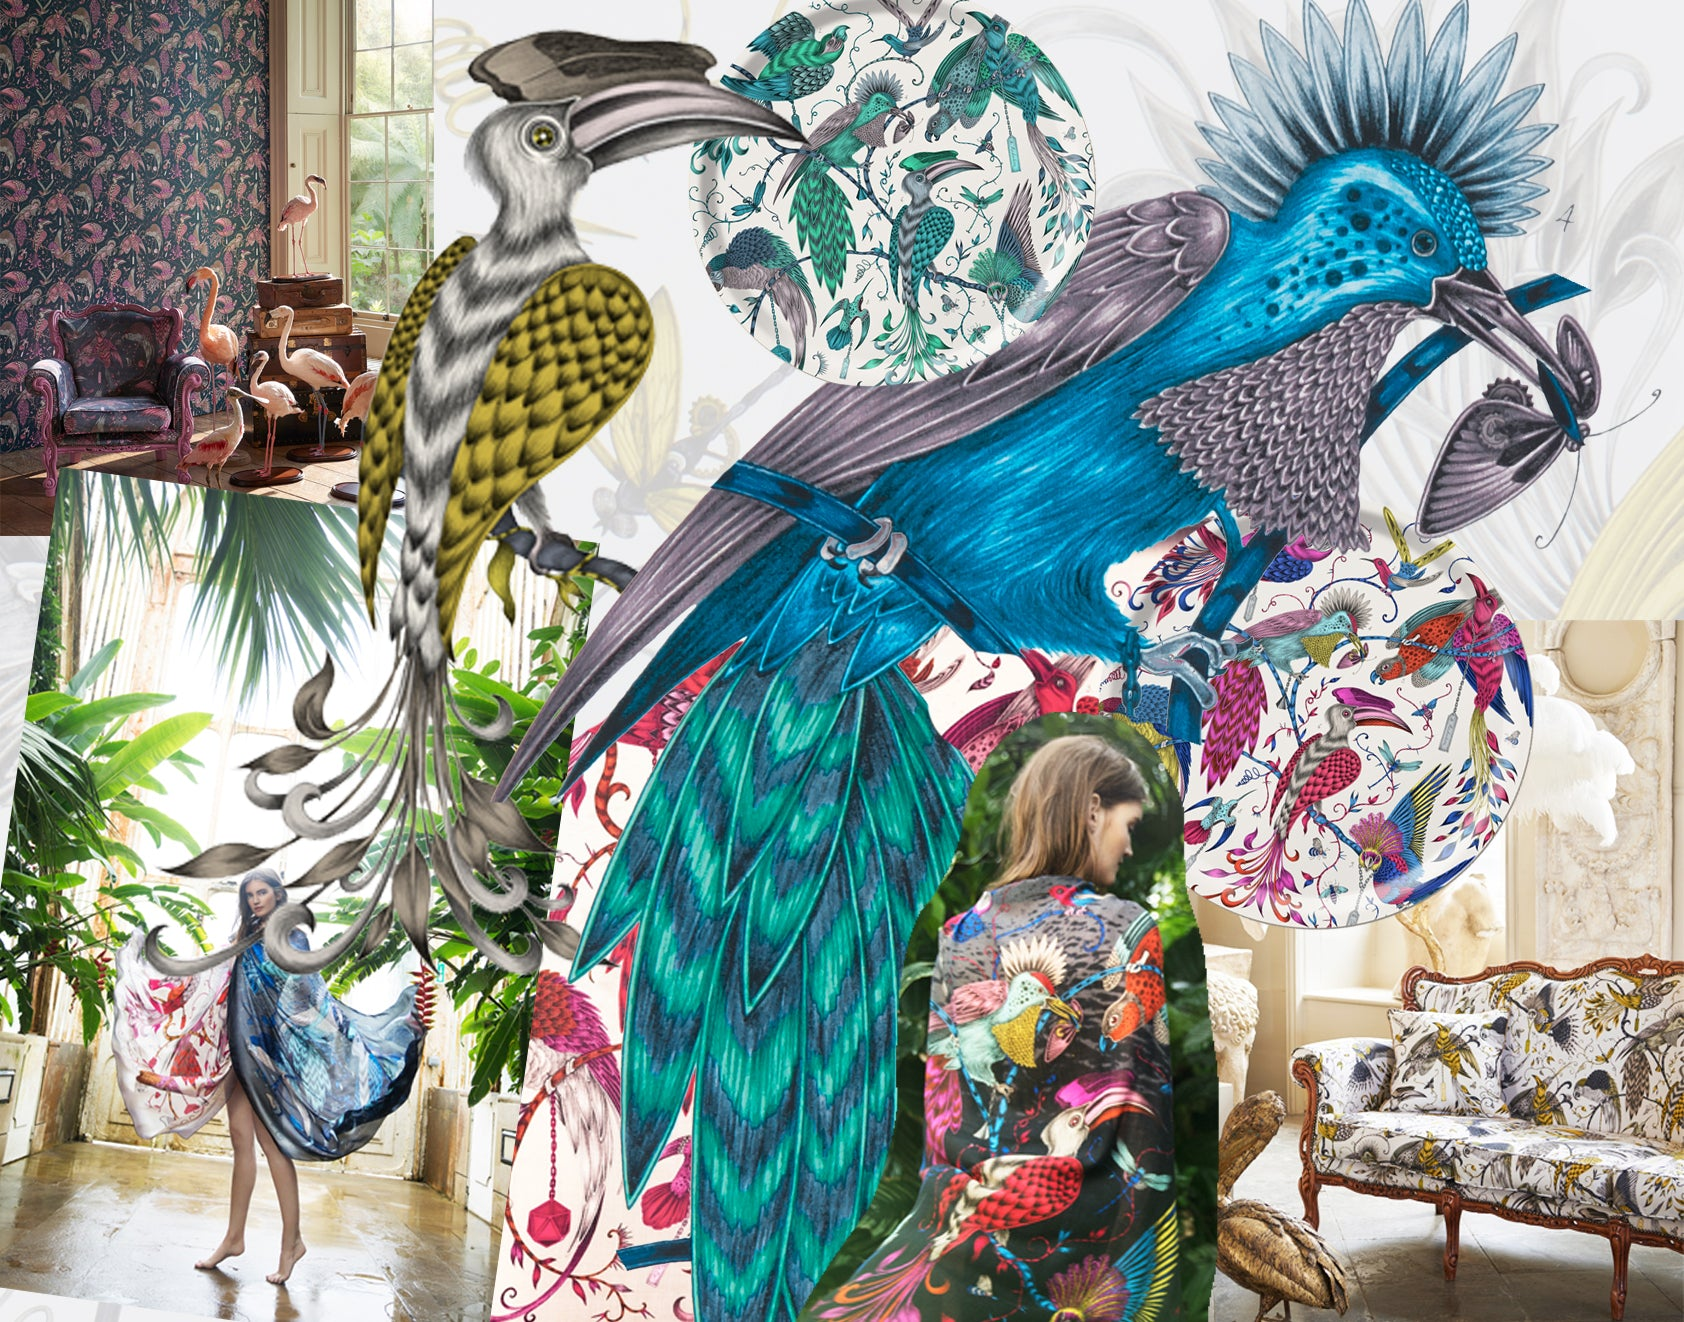 Explore some of our Audubon highlights. The design by Emma J Shipley was created in 2014 and now features across a plethora of unique pieces across our online store, such as scarves, cushions, trays, fabric and wallpaper